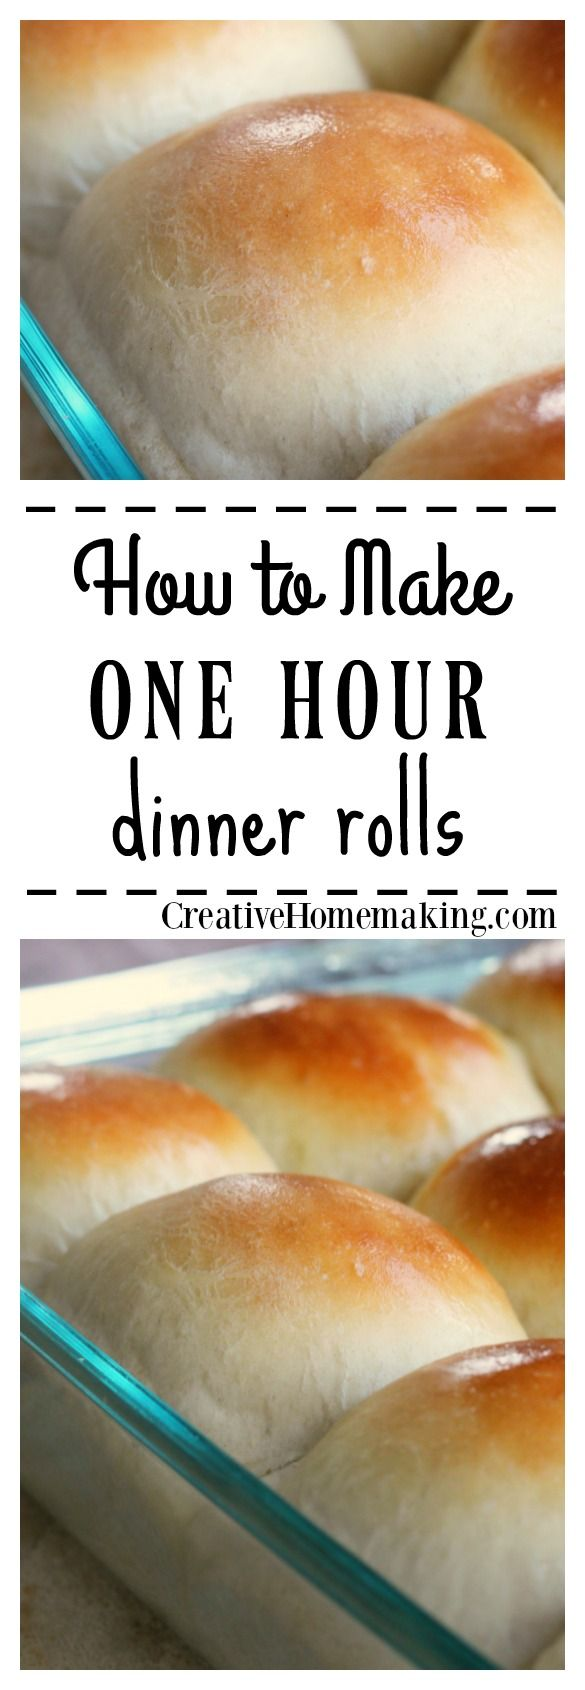 No time for baking bread? Try these one hour dinner rolls and have homemade bread on the table in no time.